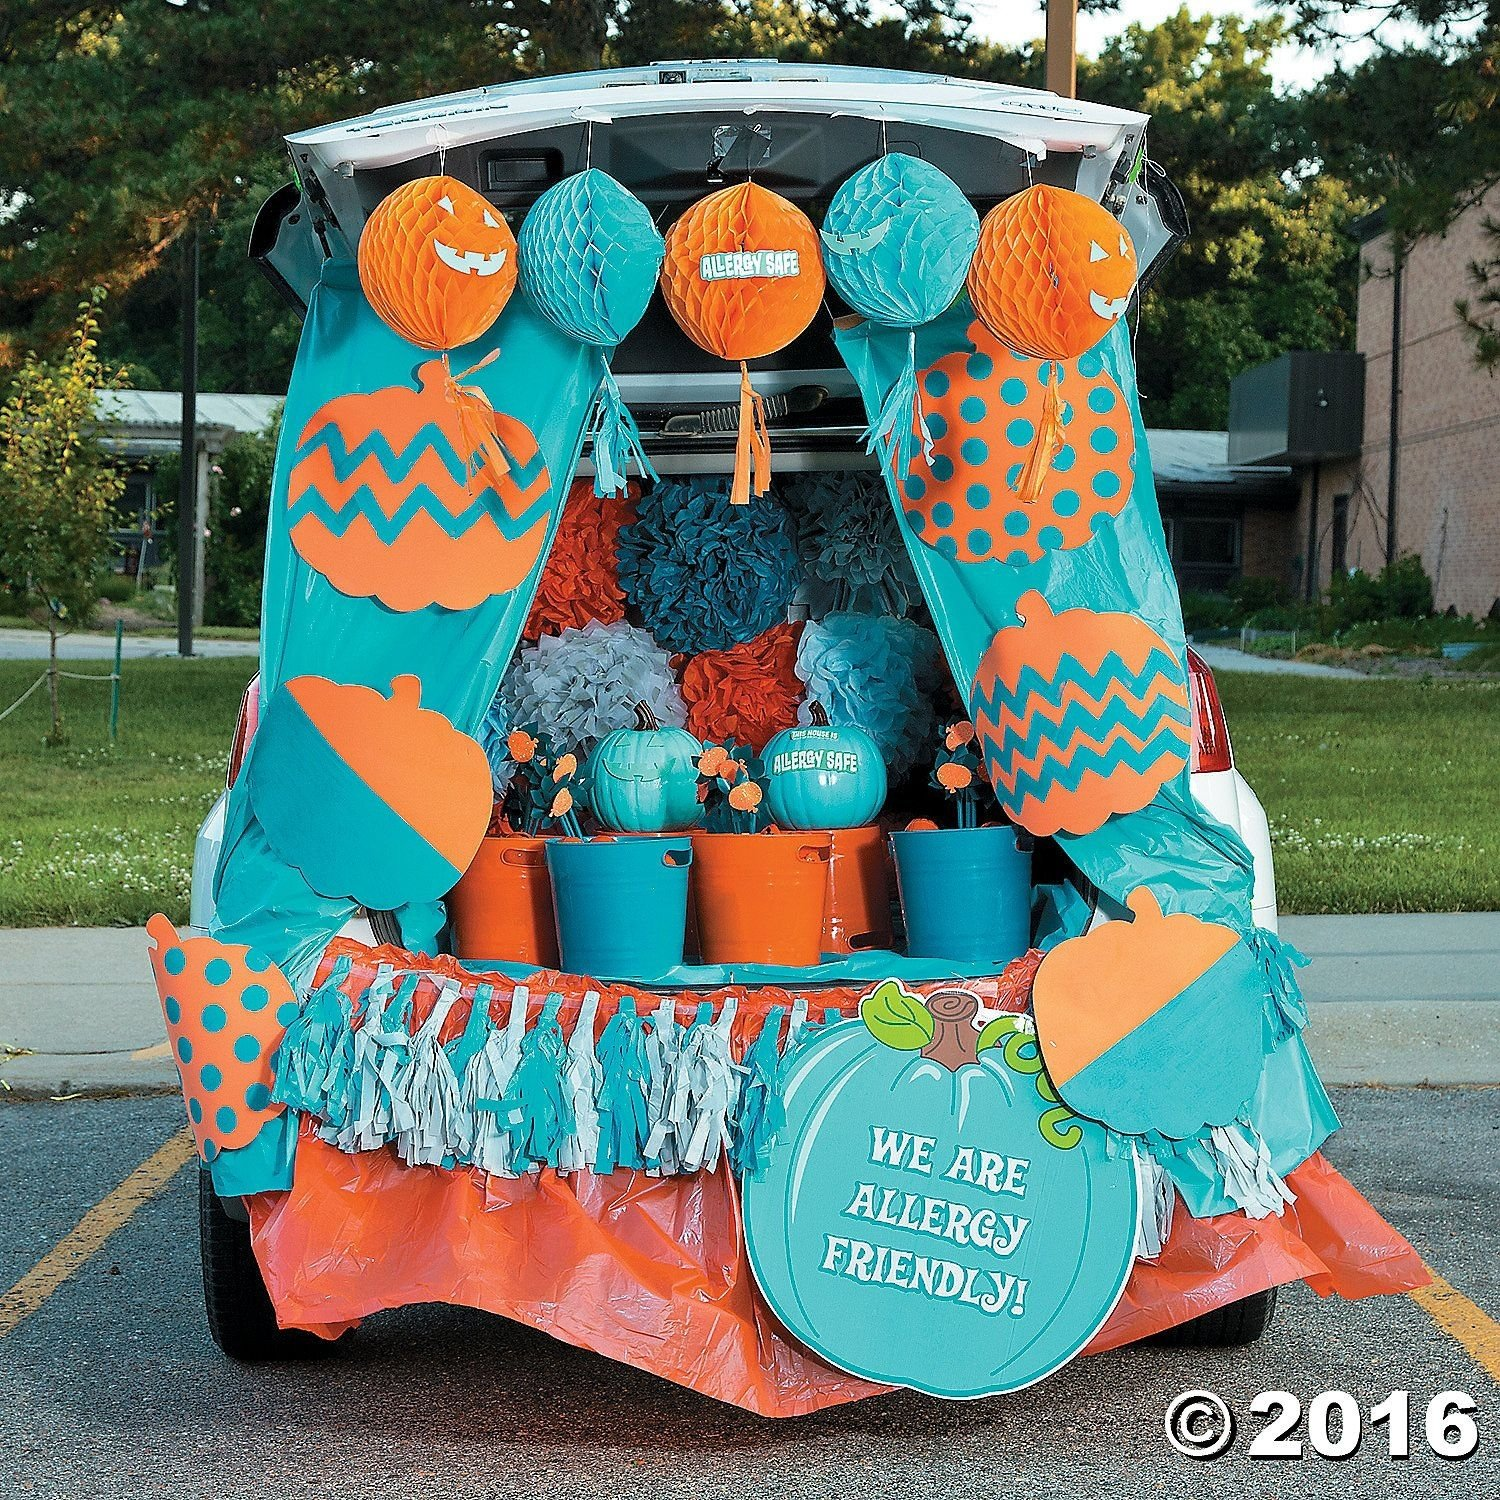 10 Attractive Trunk Or Treat Decorating Ideas For Church trunk or treat teal pumpkin d trunk or treat pinterest teal 4 2020